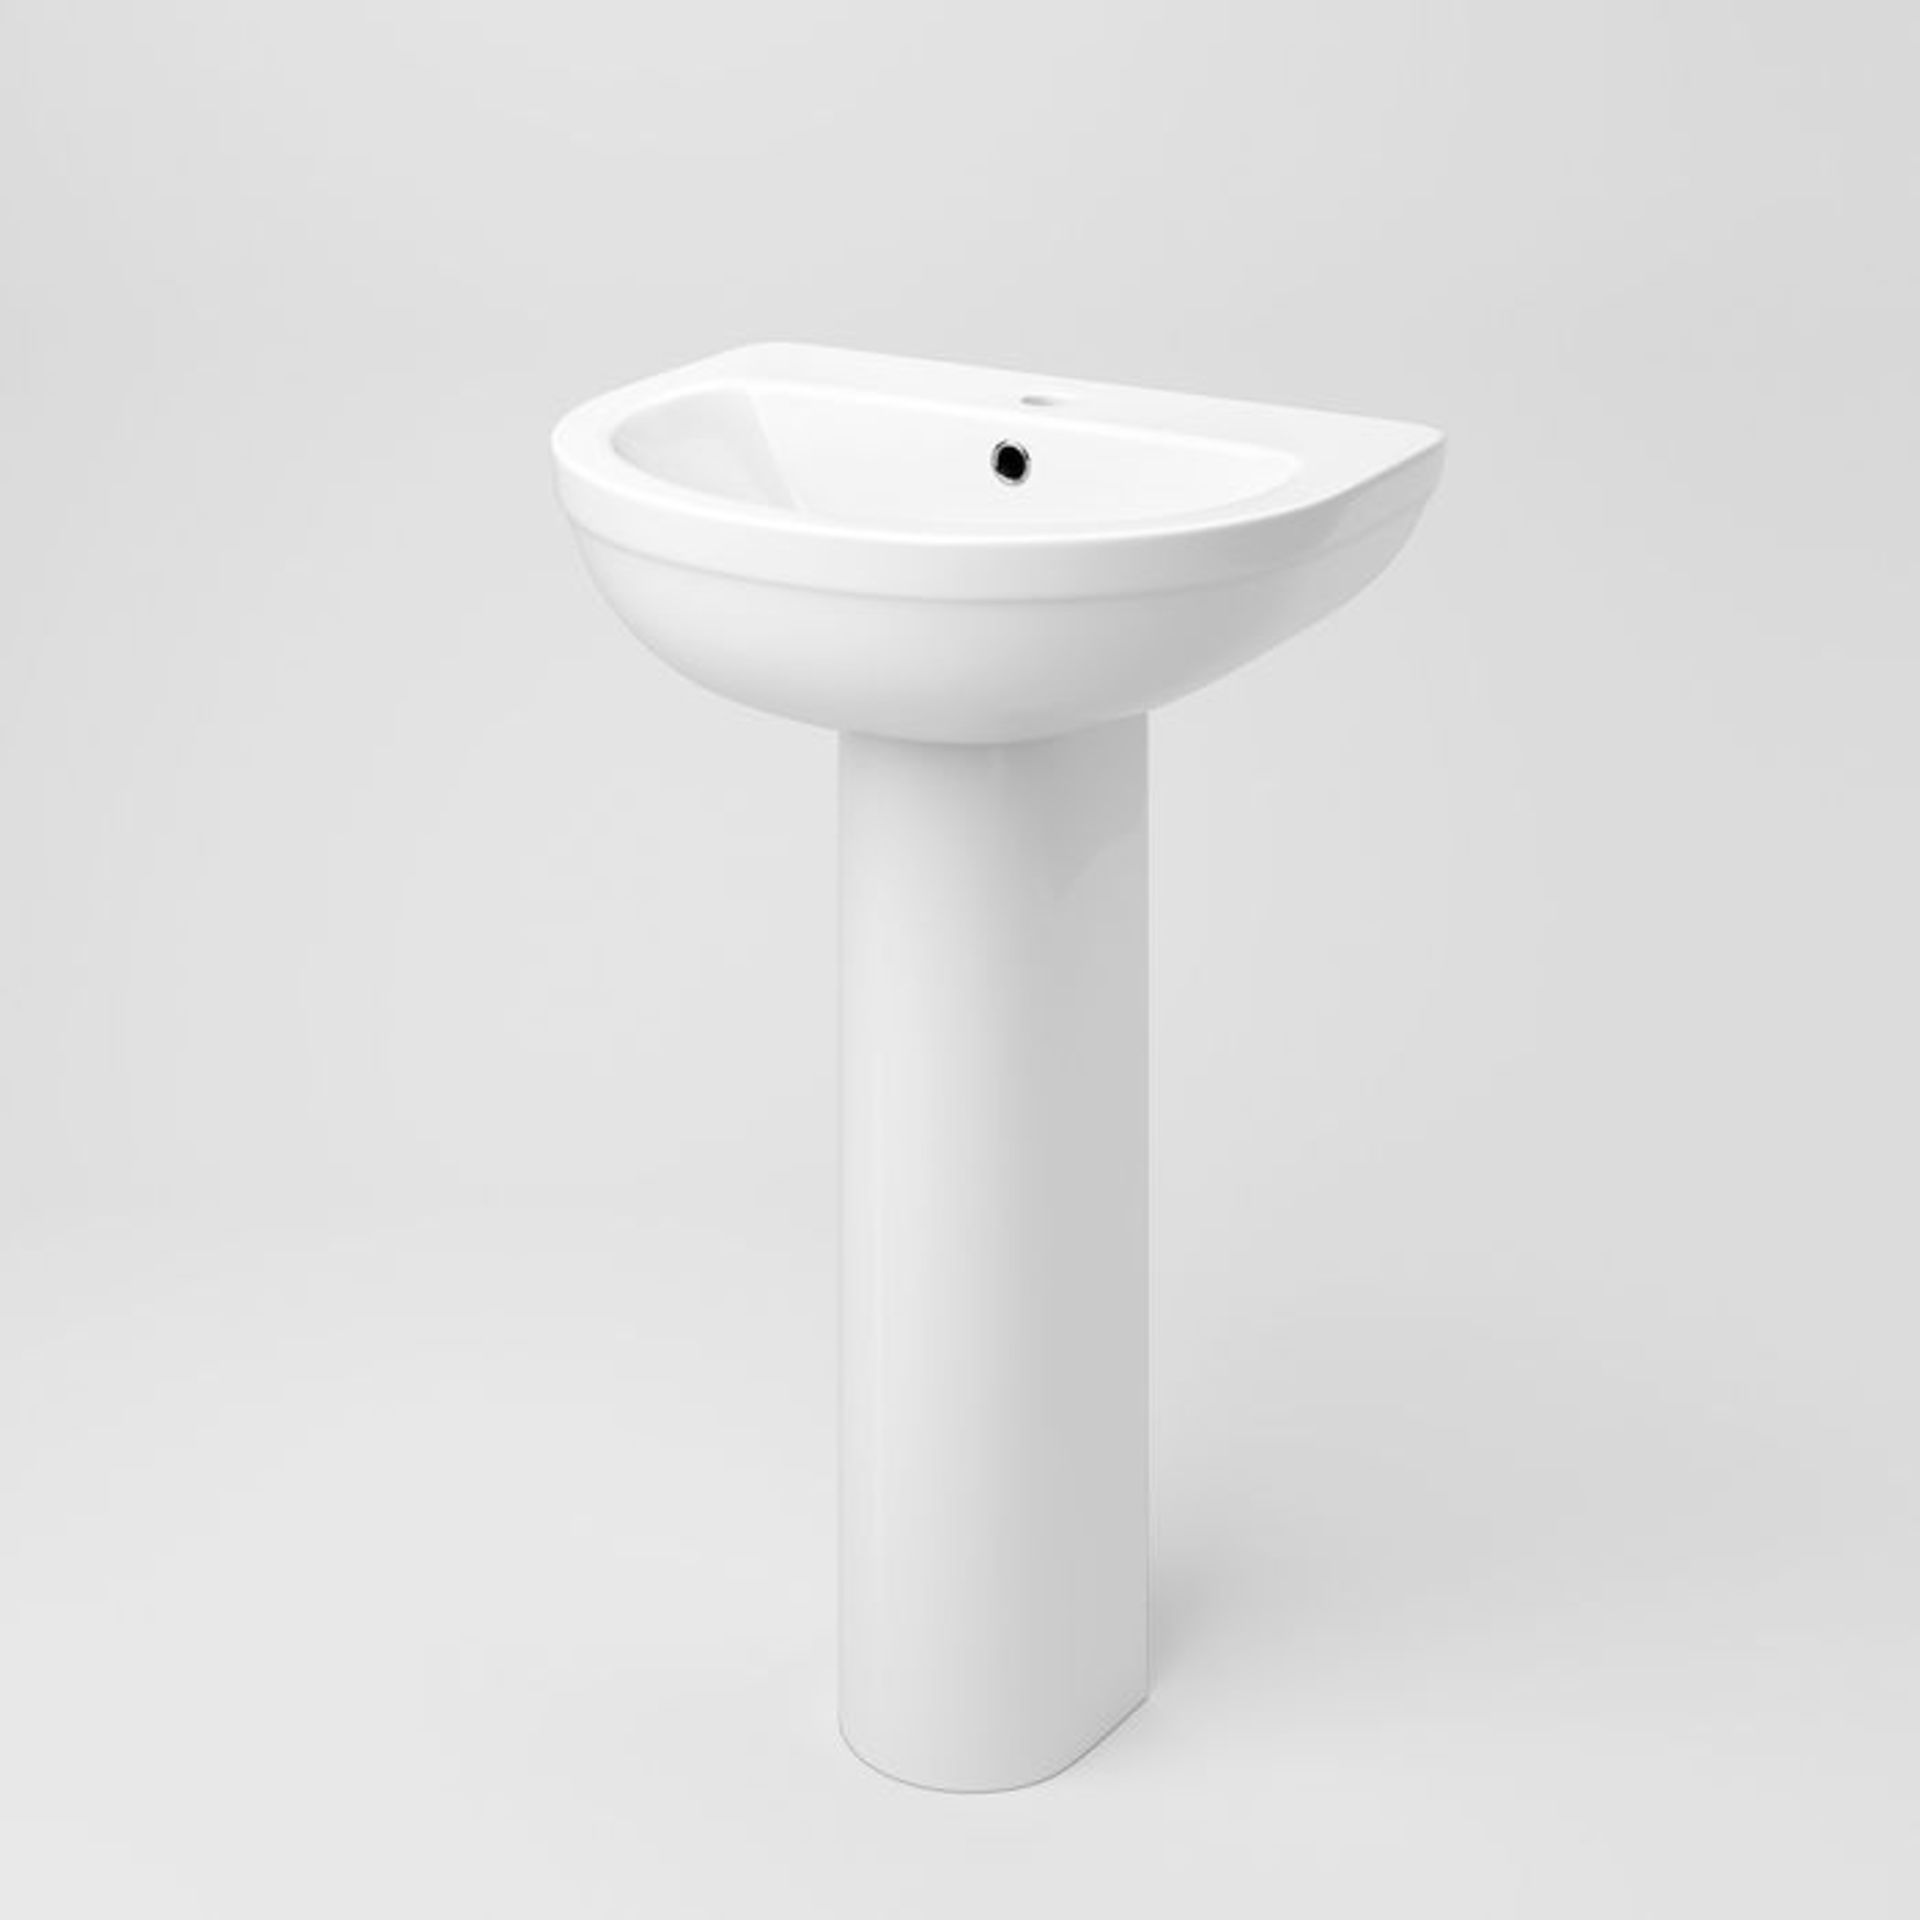 Lot 51 - (XX36) Sabrosa II Sink & Pedestal - Single Tap Hole. Made from White Vitreous China and finishe...